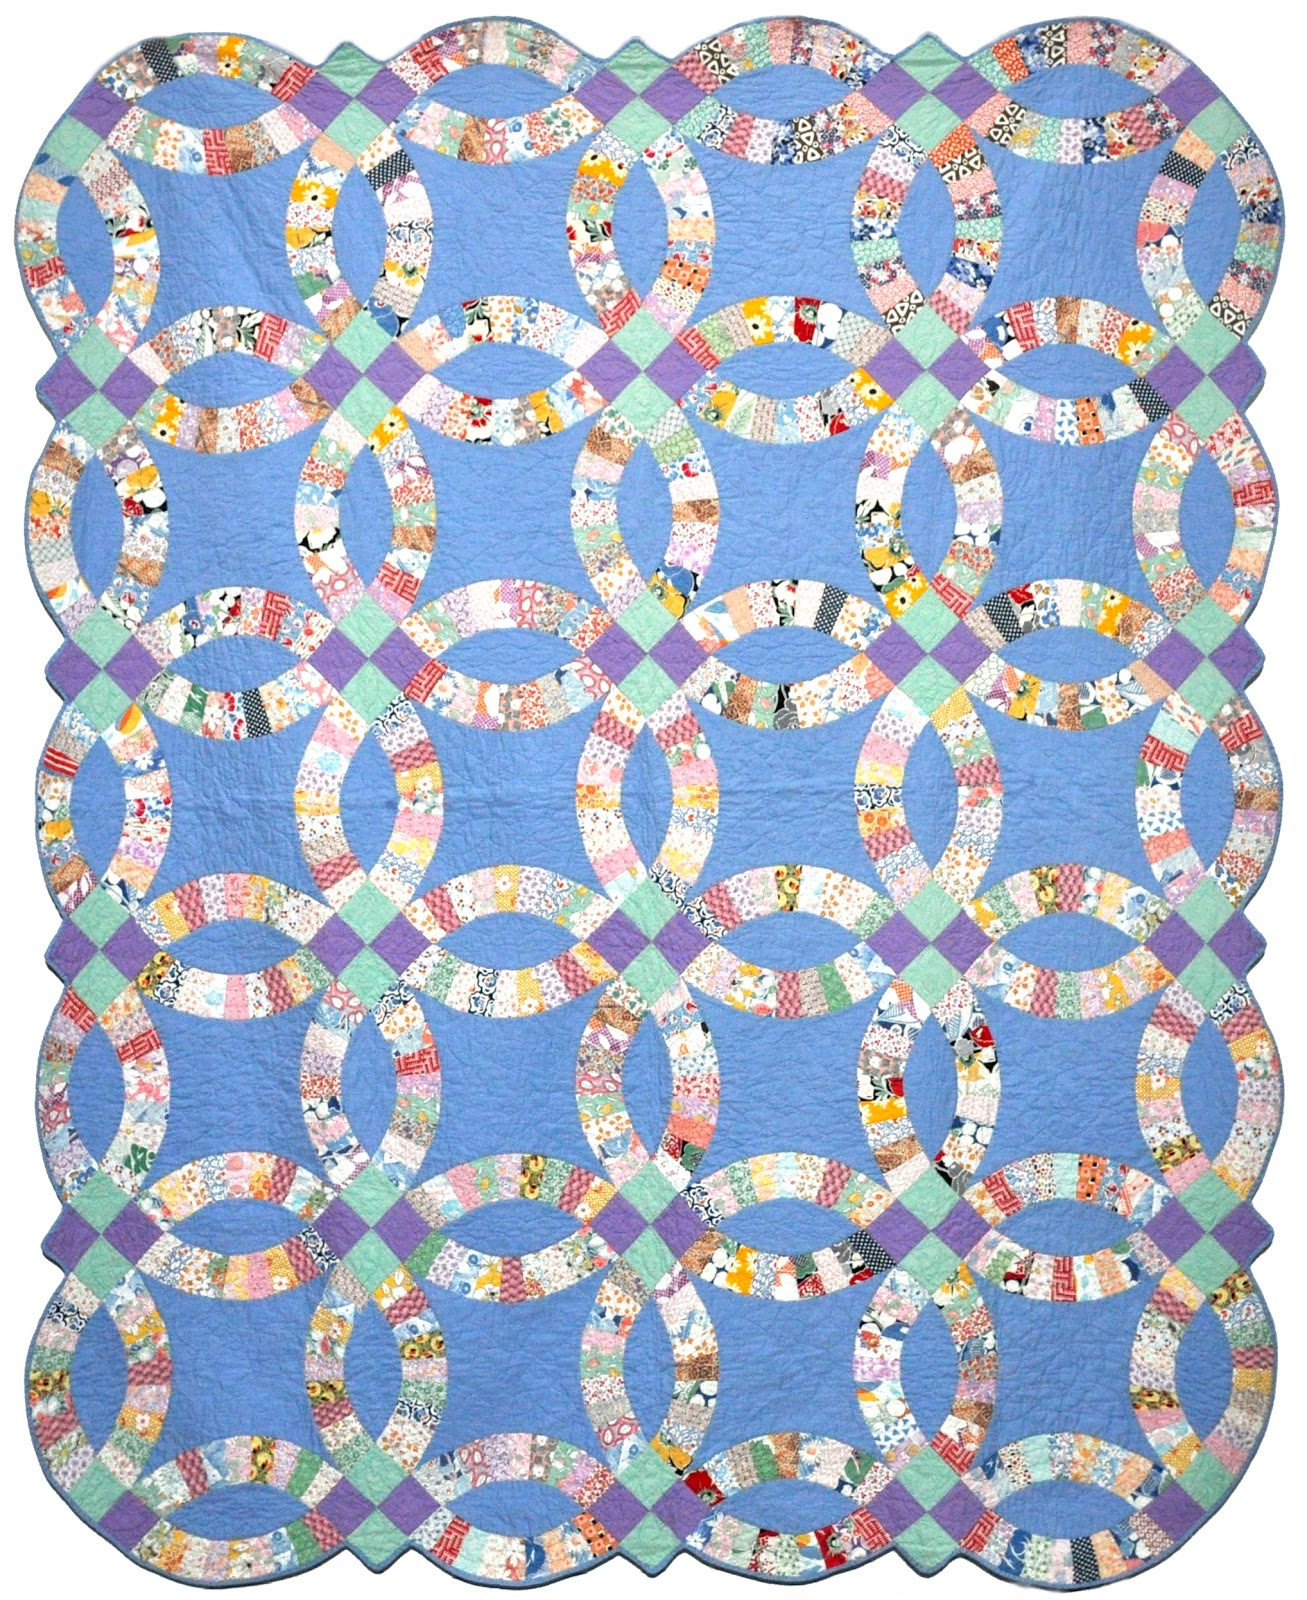 Wonkyworld 20th Century Quilts Lecture